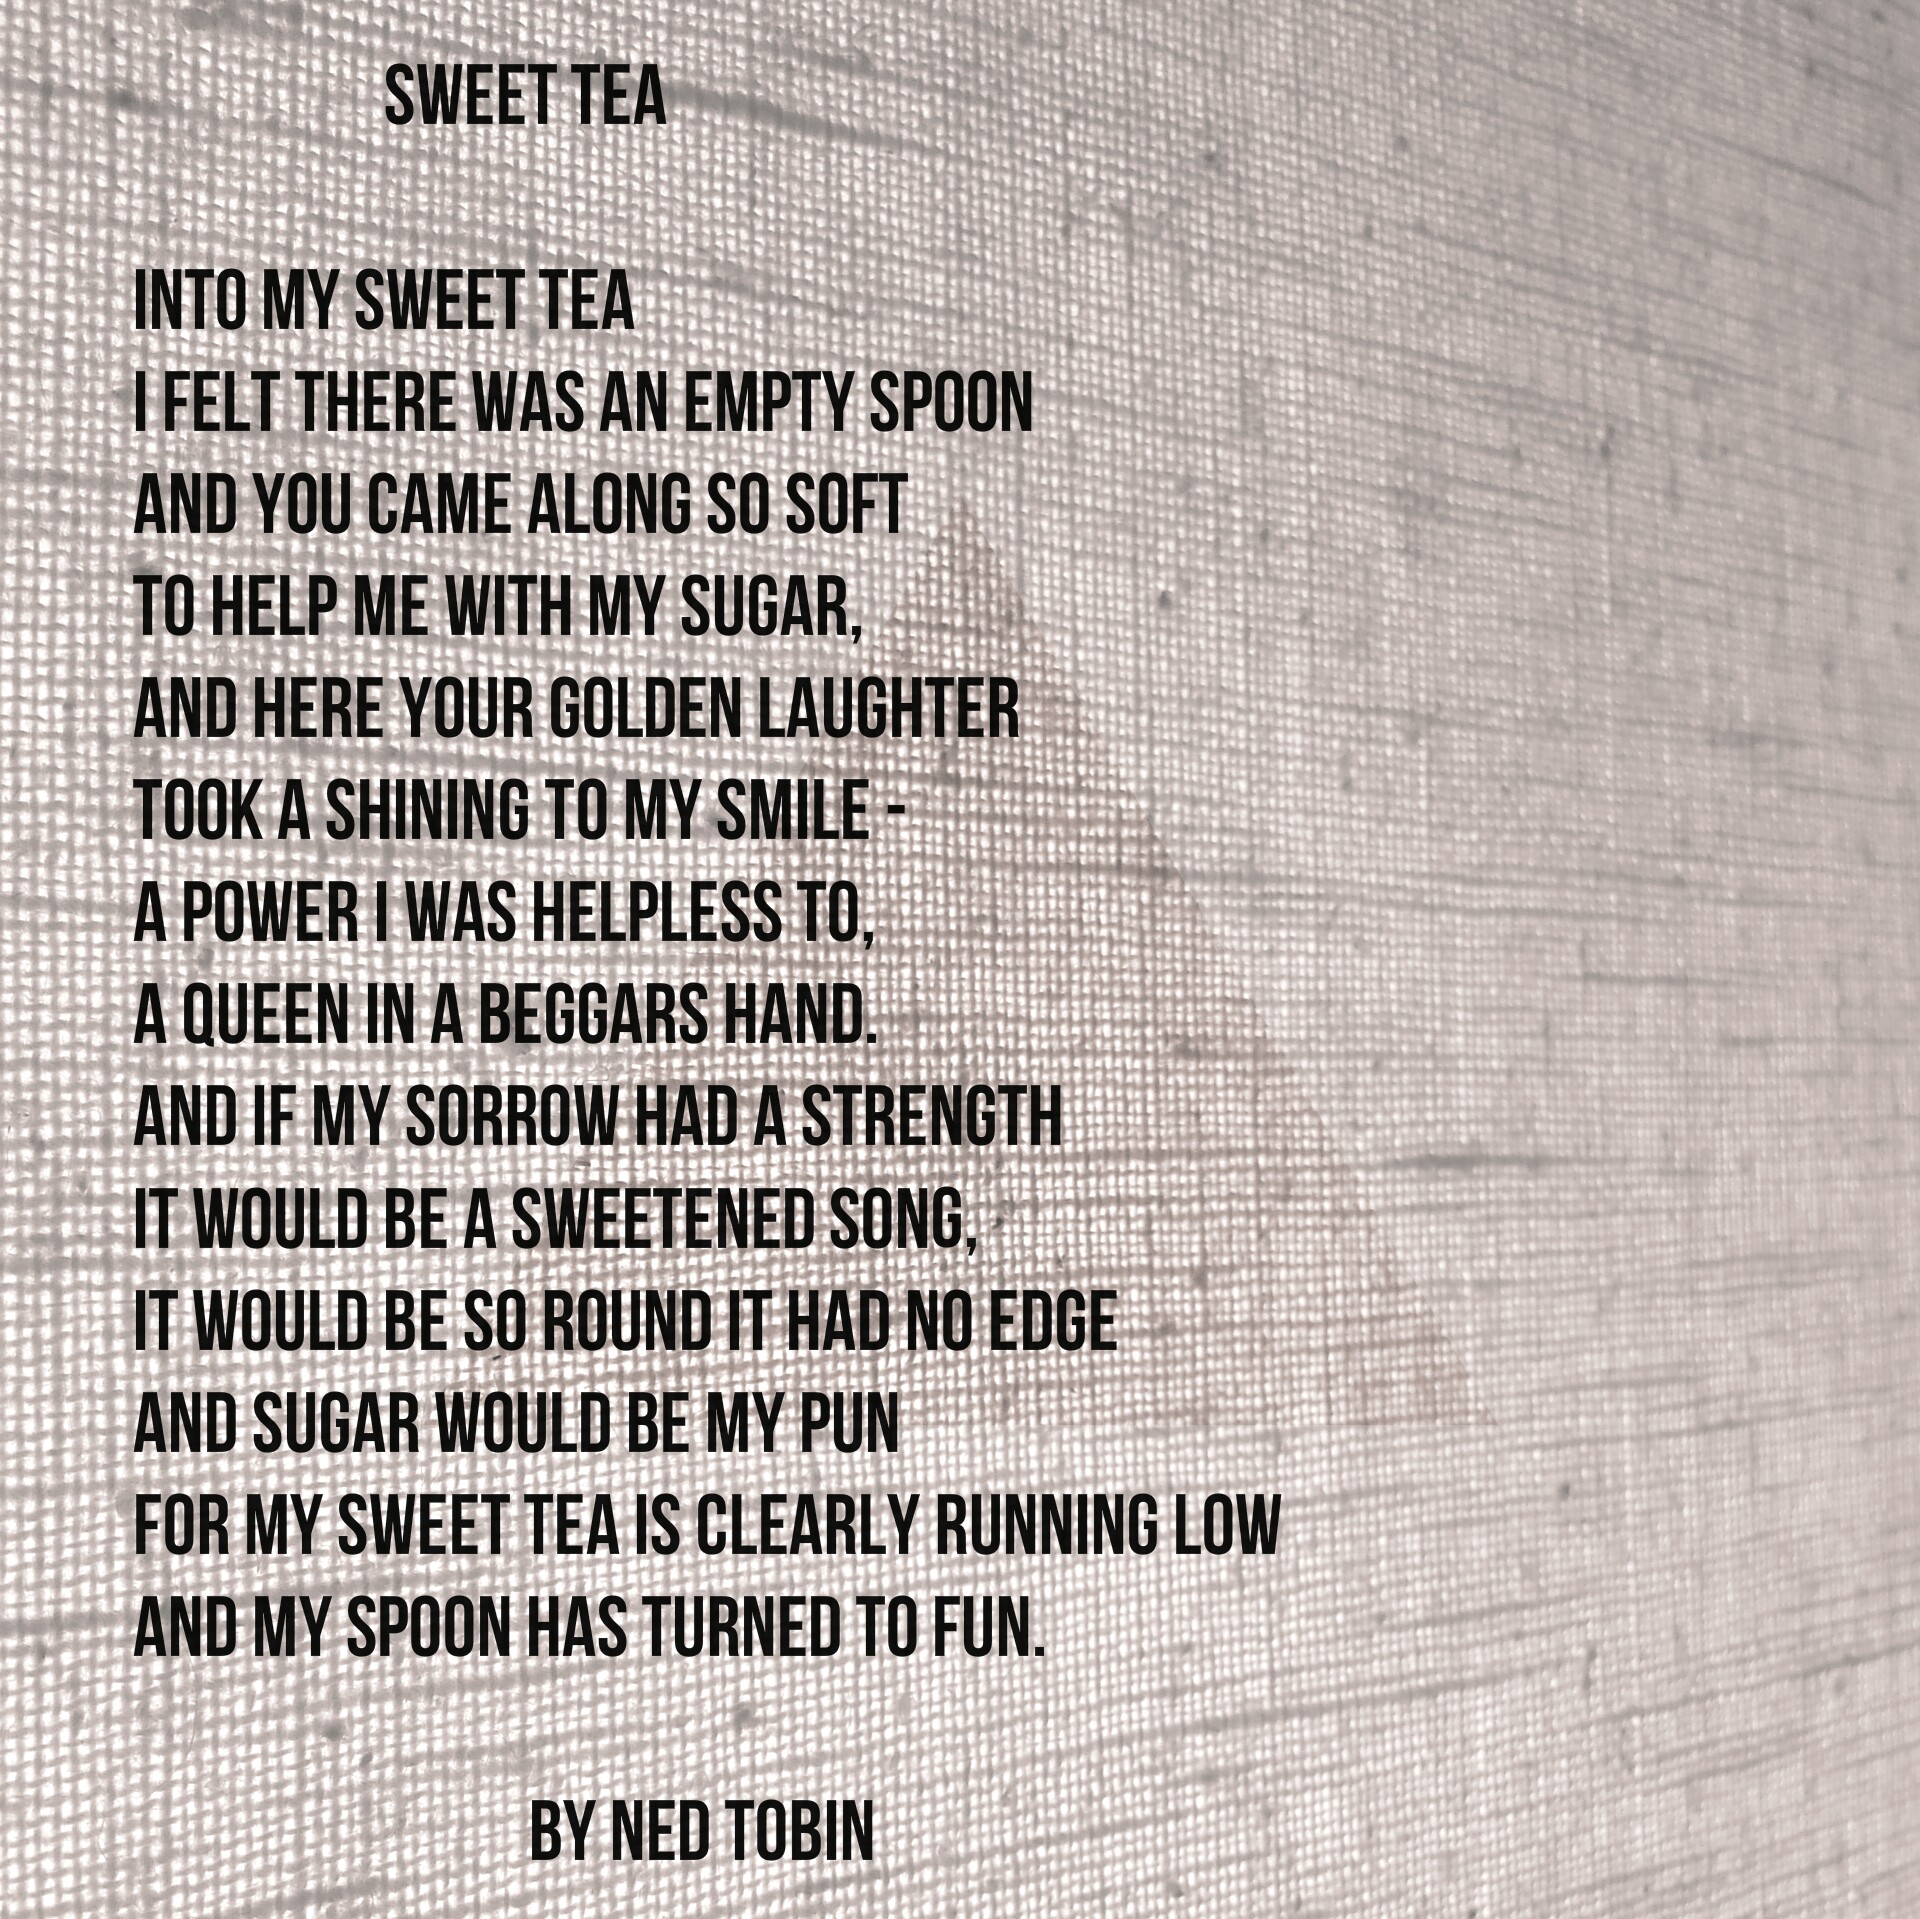 Sweet Tea by Ned Tobin